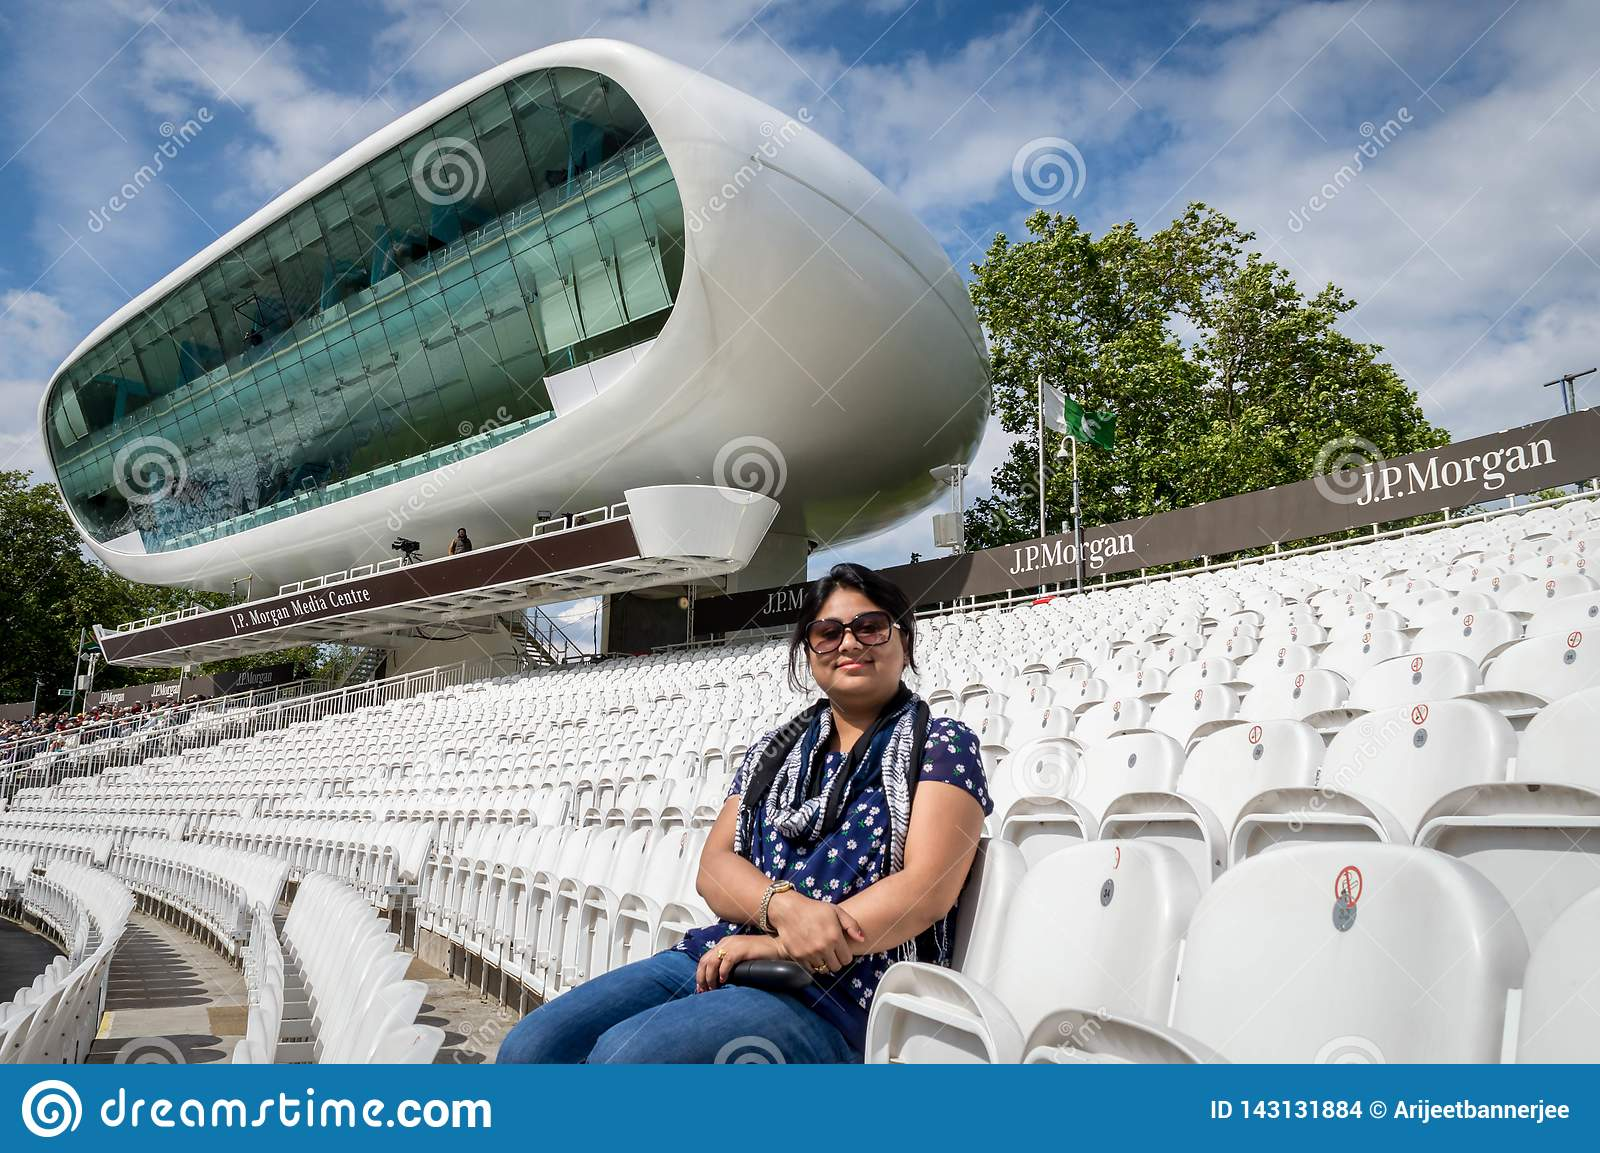 A lady sitting on the empty pavilion of Lord`s Cricket Ground with the media center in